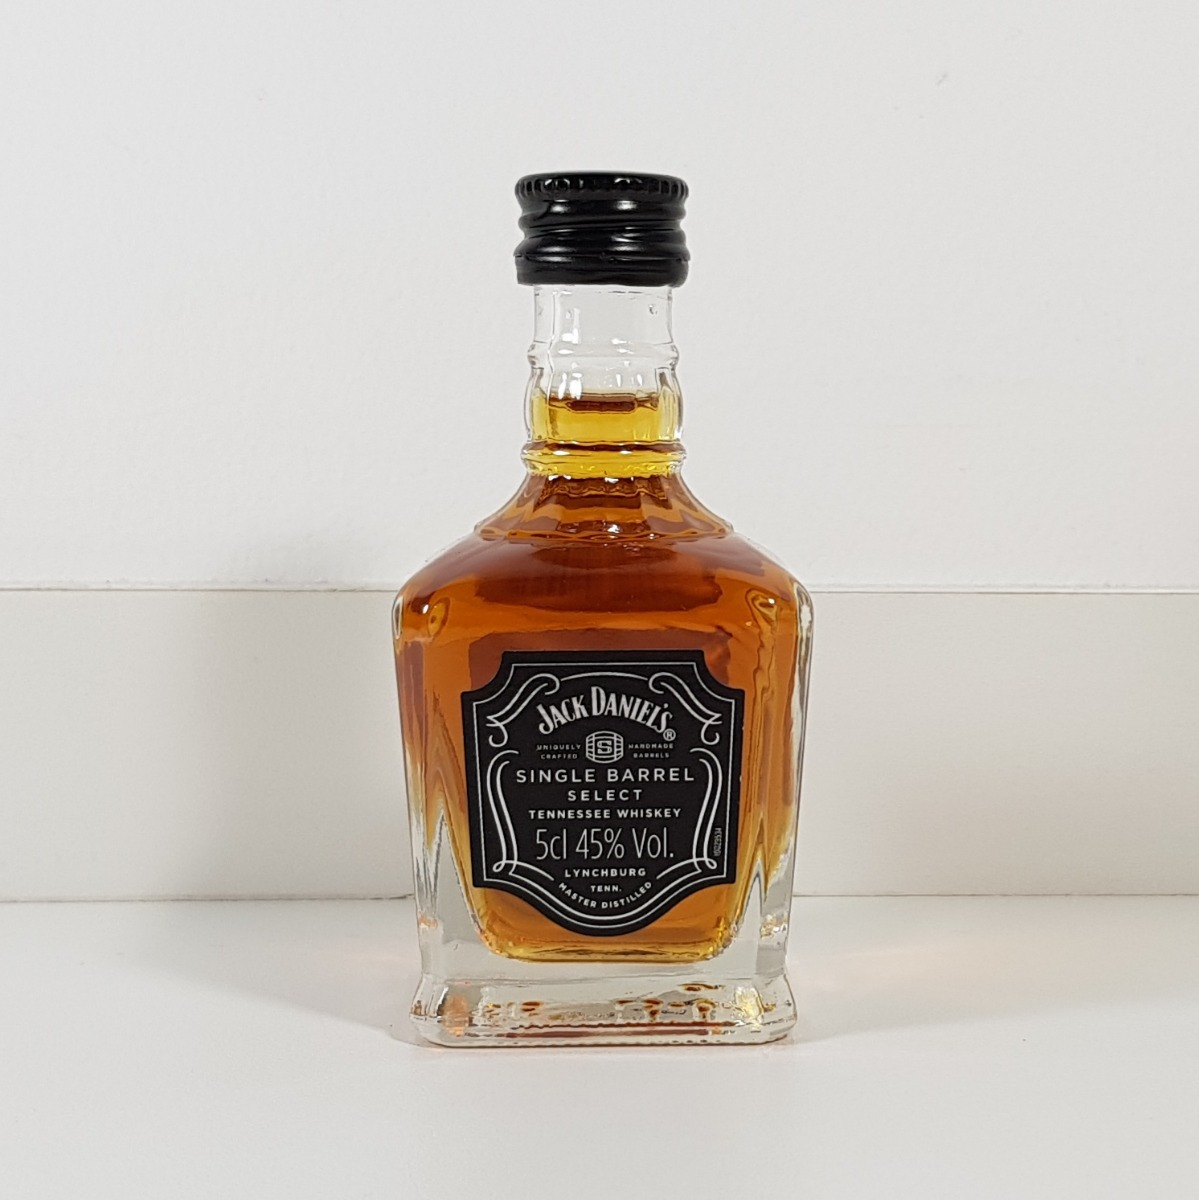 ddd77c31b8 miniatura whisky jack daniels single barrel 50ml - raríssima. Carregando  zoom.